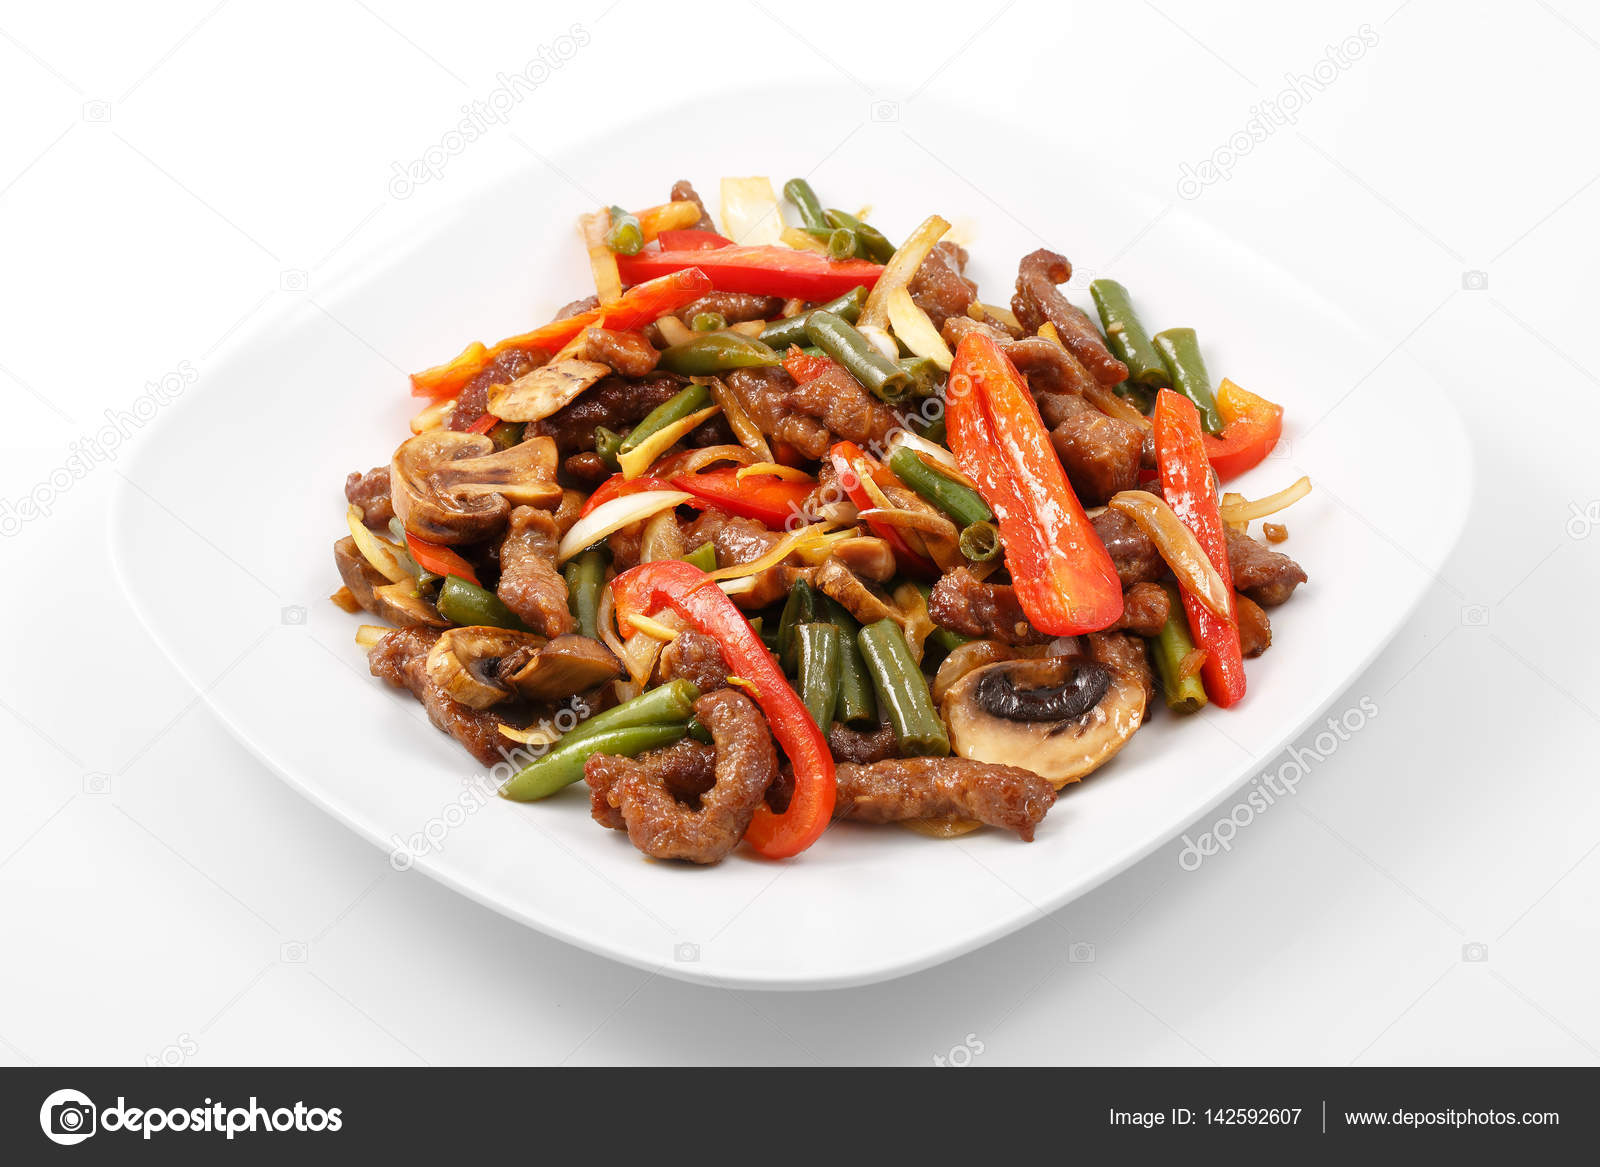 Meat in Chinese, pork, Chinese sauce, mushrooms, green beans